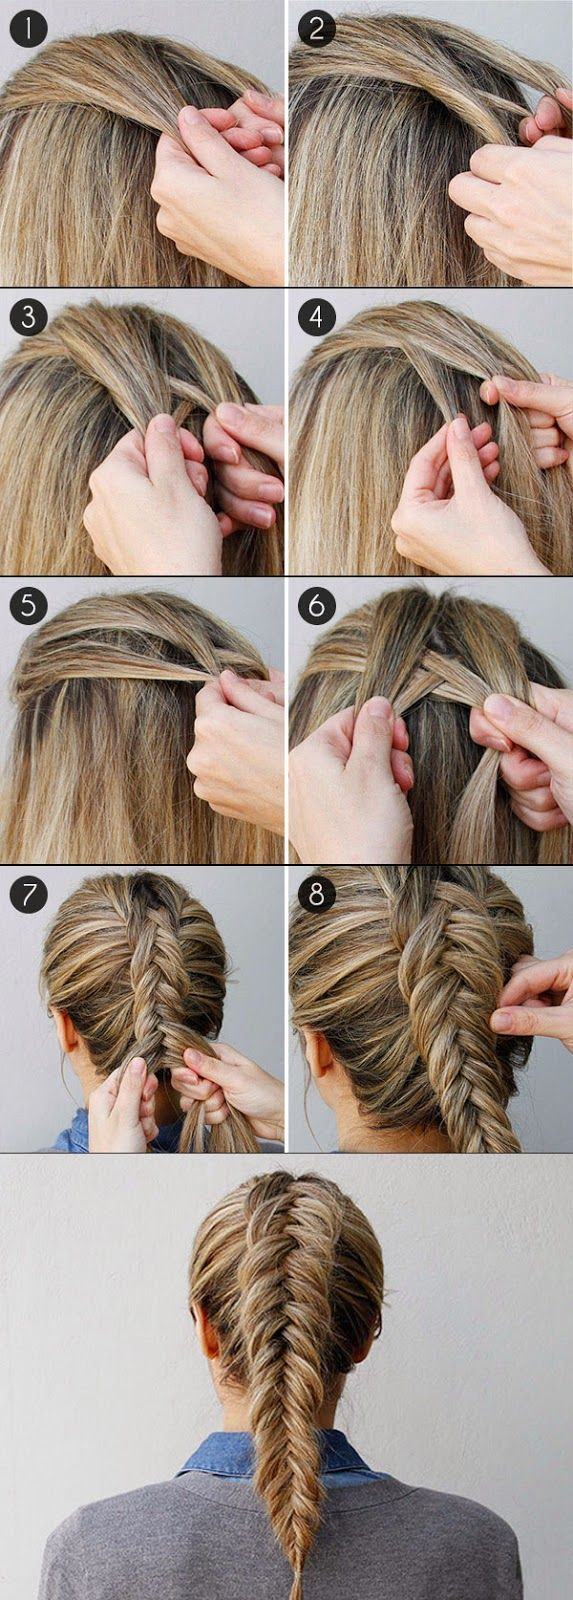 Groovy Braided Hairstyles Hairstyles And Braids On Pinterest Hairstyles For Women Draintrainus